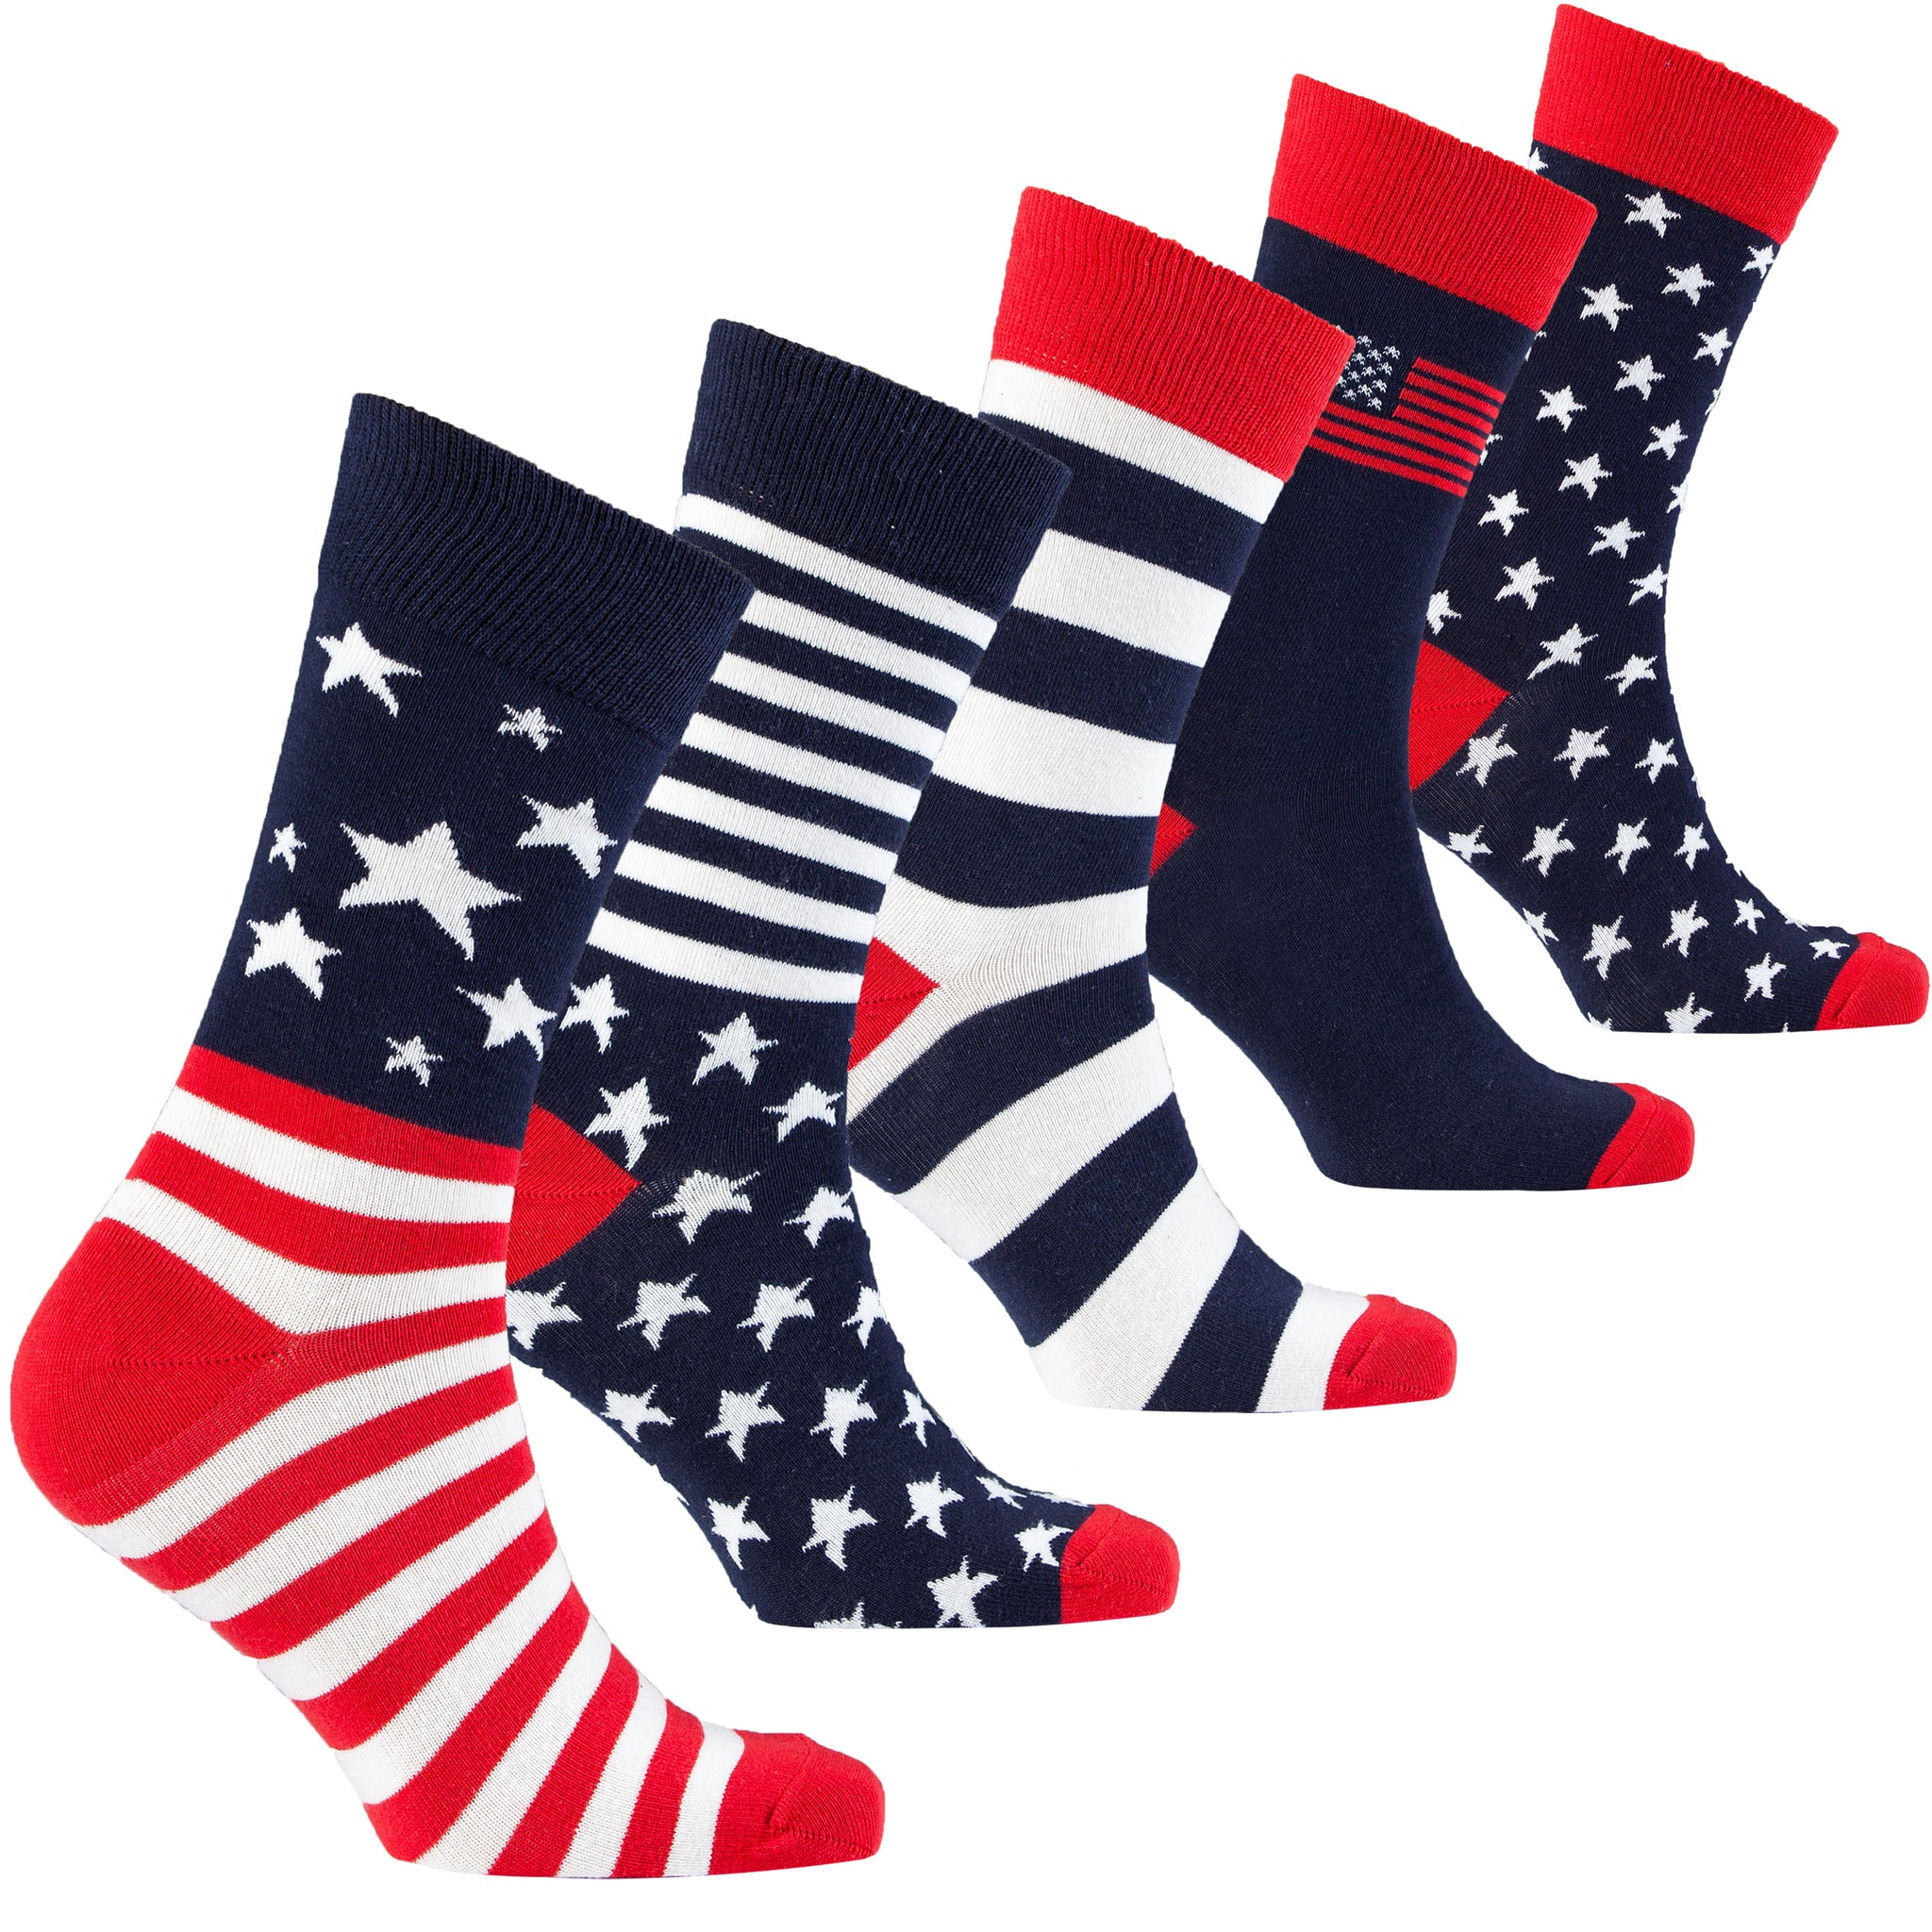 Men's Patriot Socks